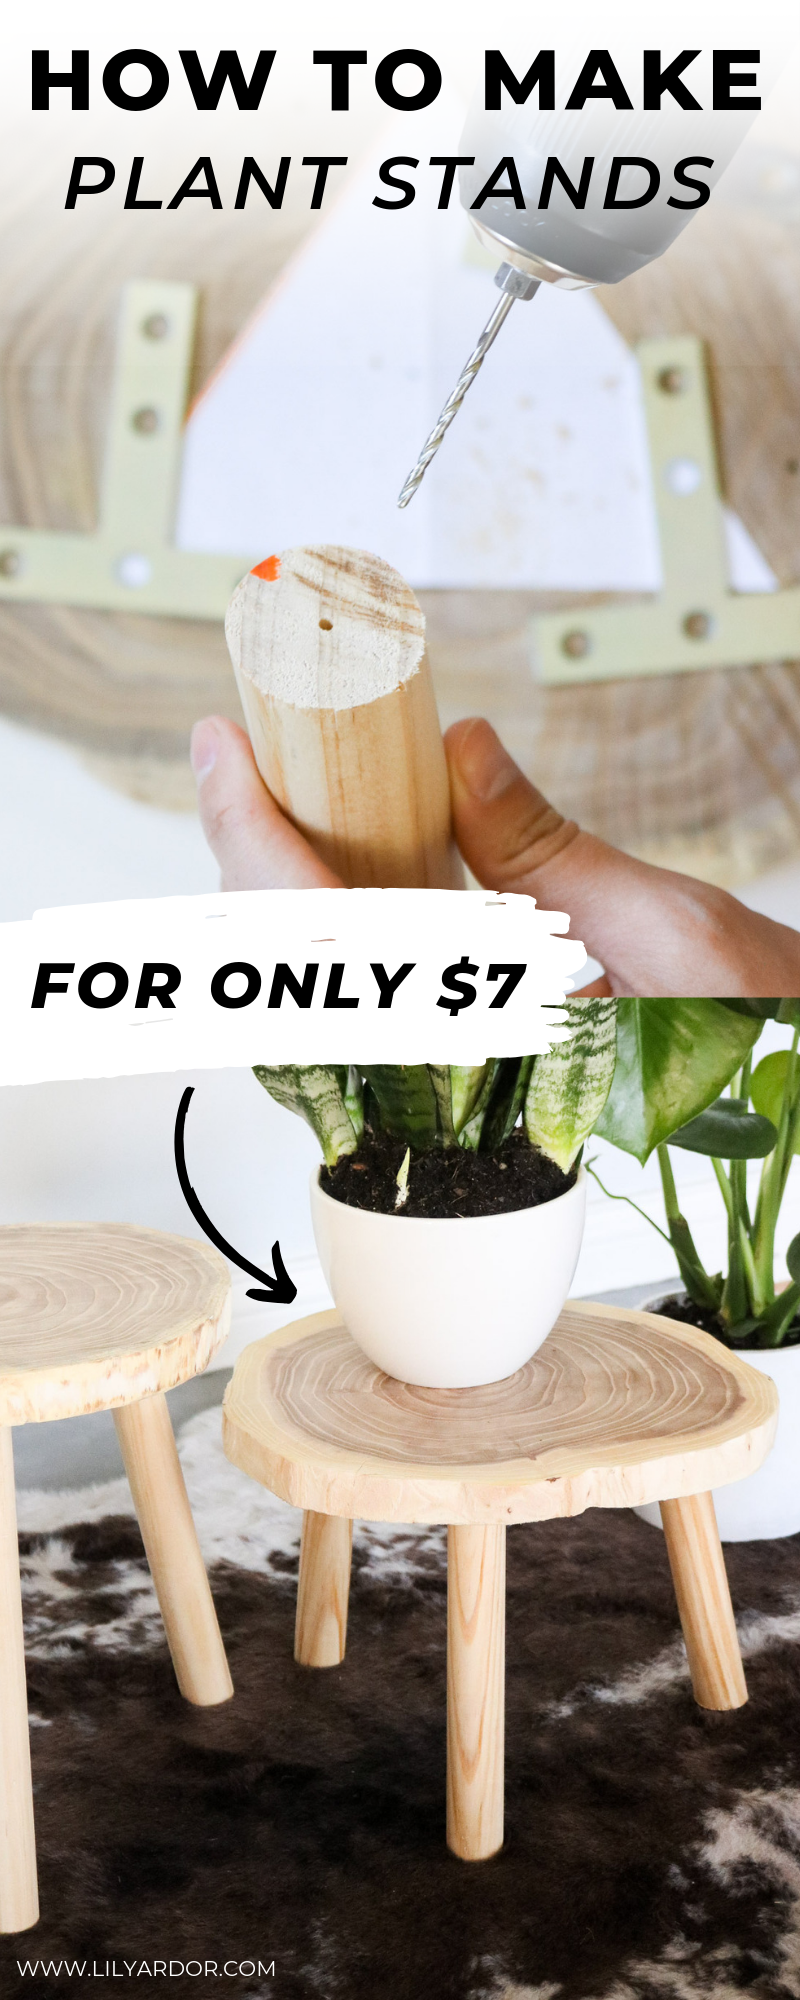 DIY Plant STANDS FOR $7QUICK AND EASY! WOOD PLANTS STANDS is part of Wood plant stand, Plant stand, Diy plants, Diy plant stand, Plant stand indoor, Wooden plant stands - Here's how I made my DIY wood plant stand for only $7! Follow a few easy steps to make your own! GREAT FOR A TOTAL BEGINNER!